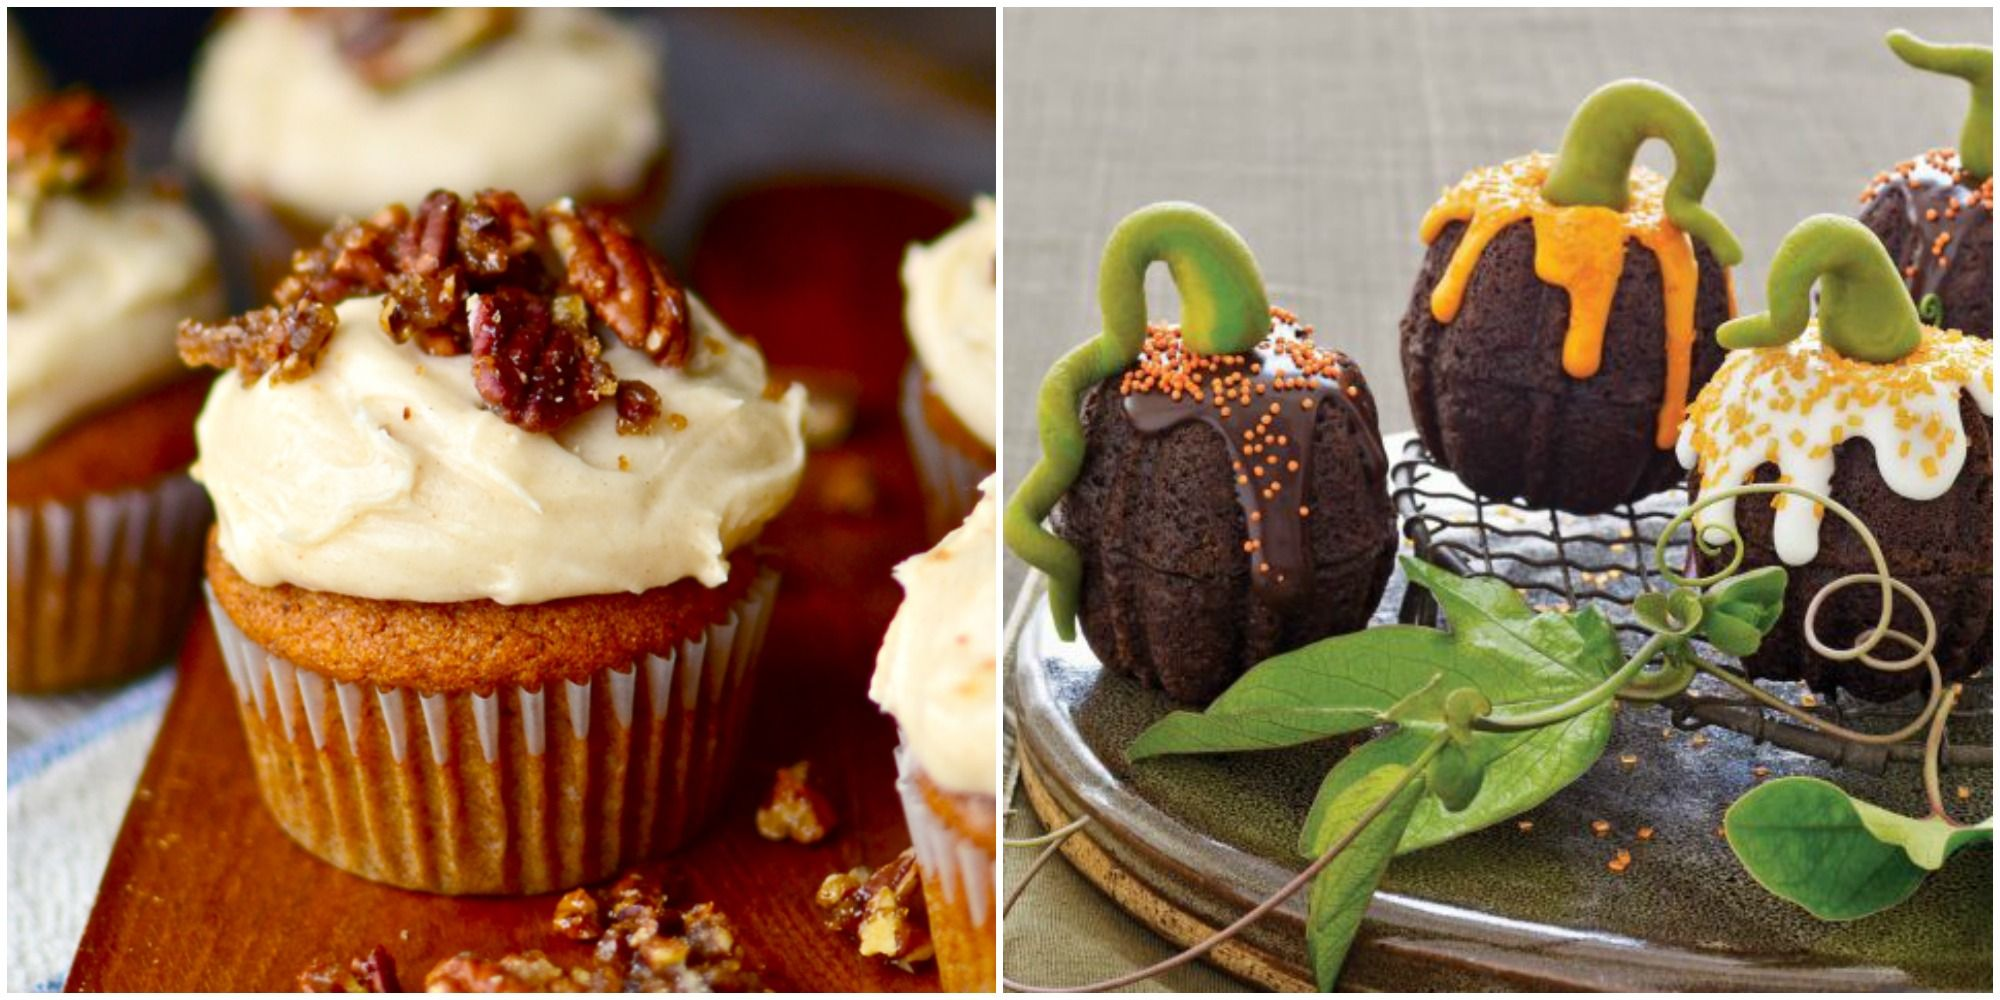 Ina Garten Pumpkin Muffins 15 Best Pumpkin Cupcake Recipes  How To Make Pumpkin Cupcakes